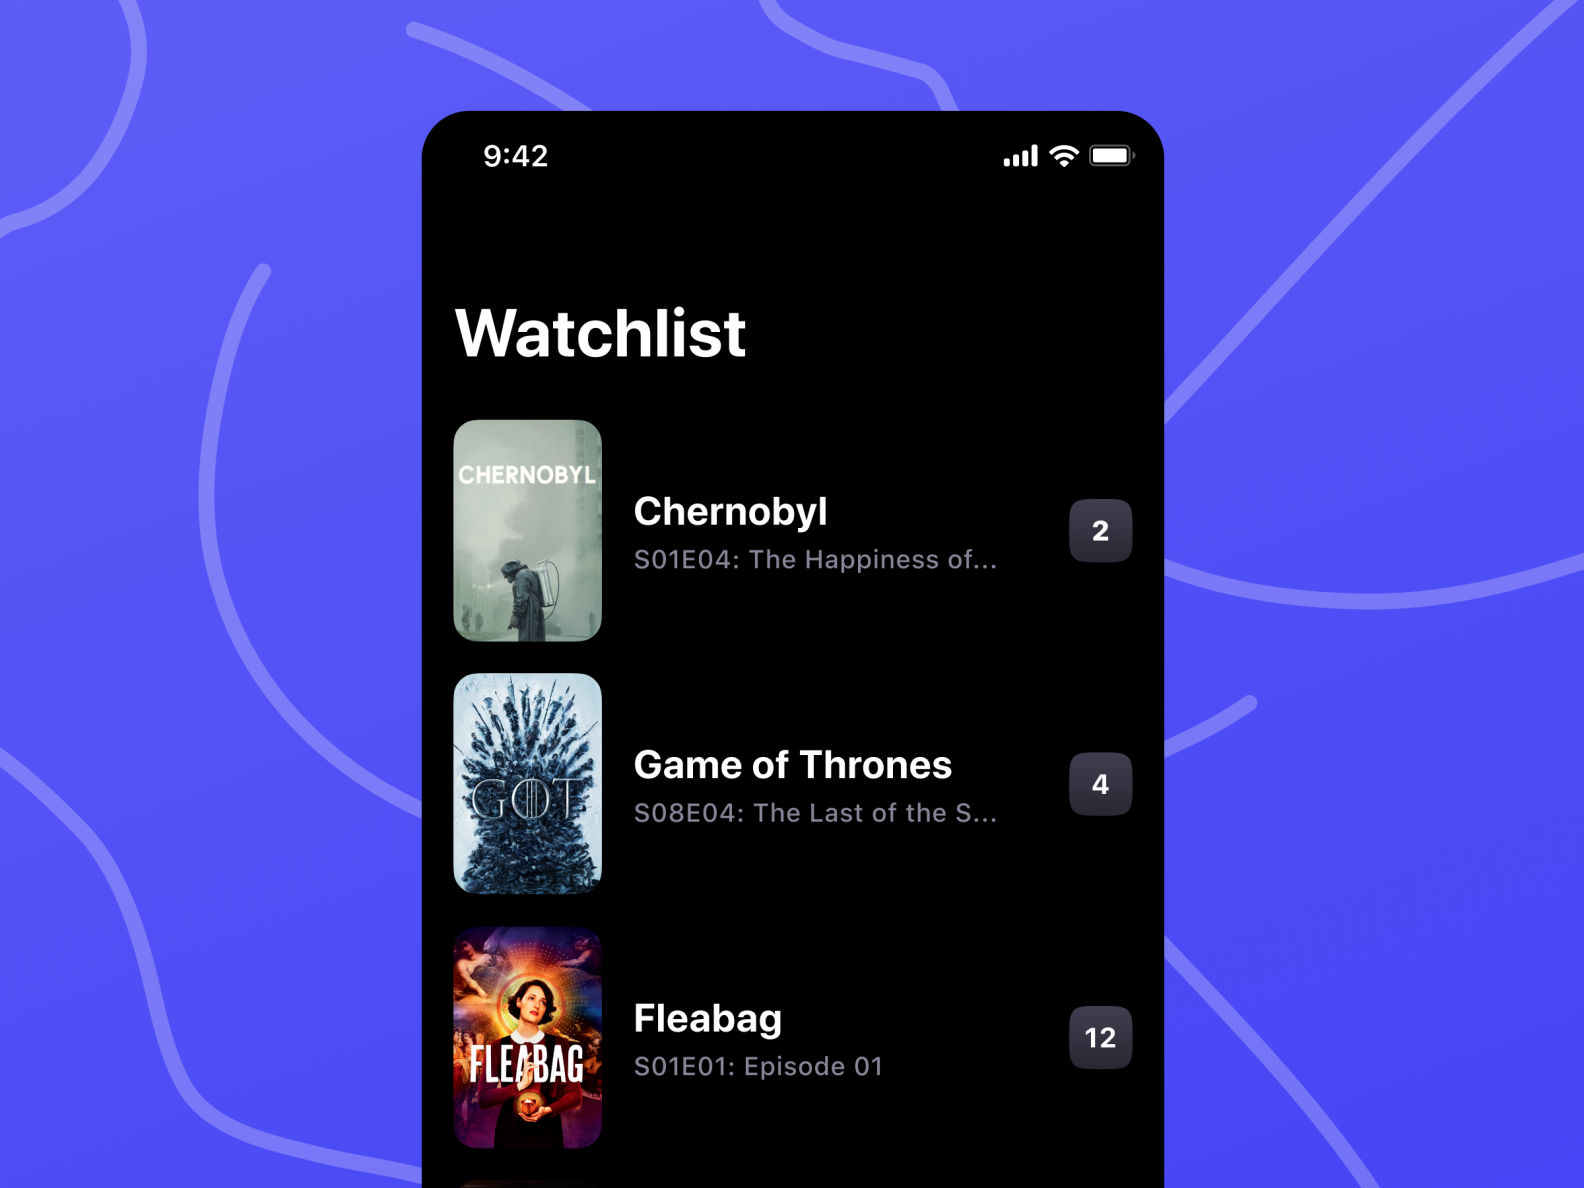 An embed embed post from my Dribbble account with the name Watchlist